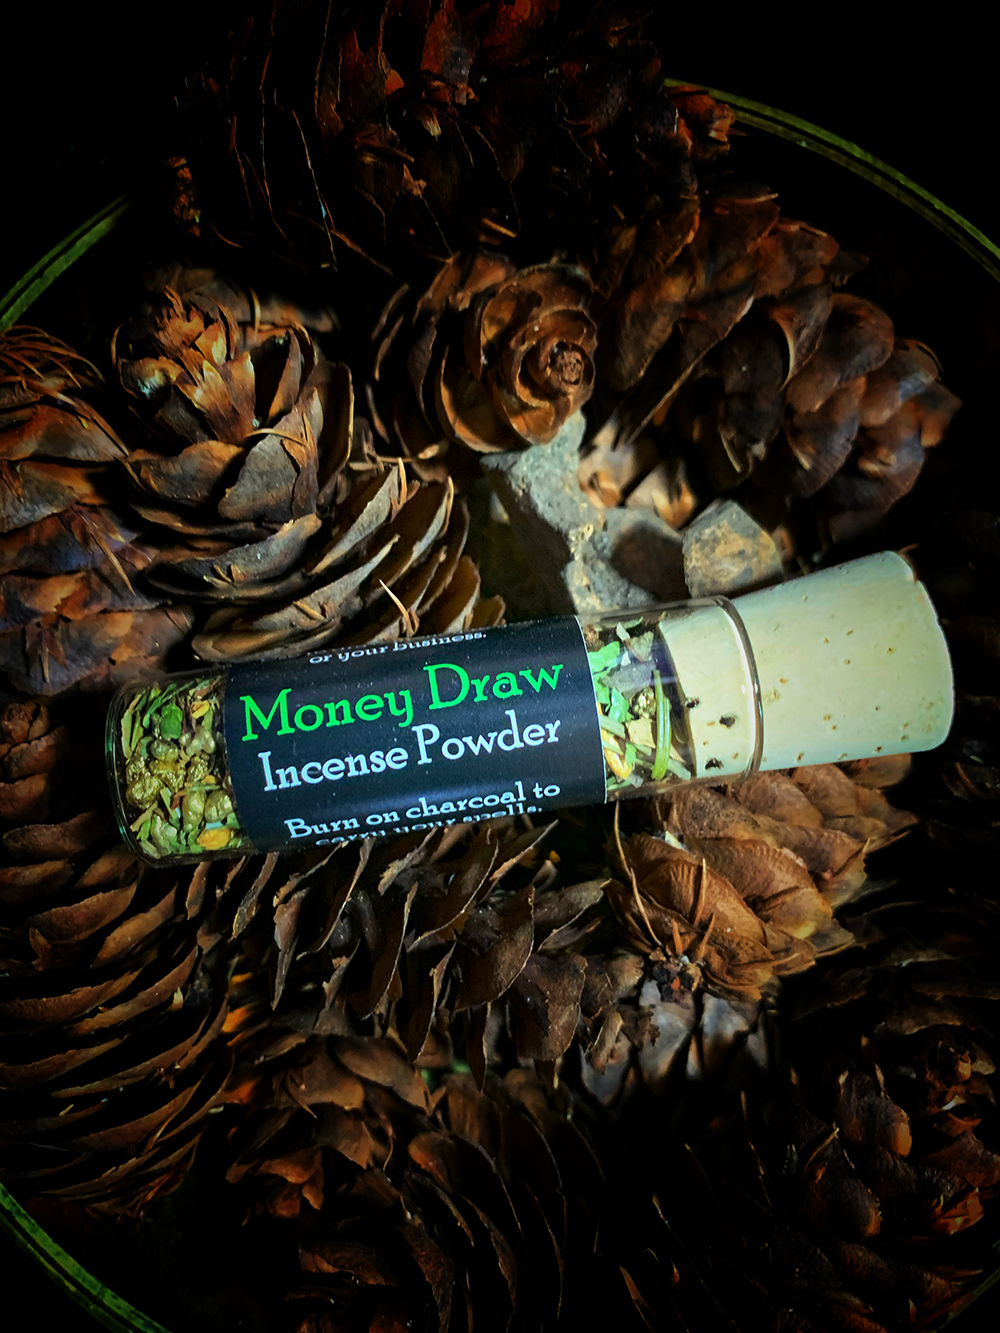 Money Draw Incense